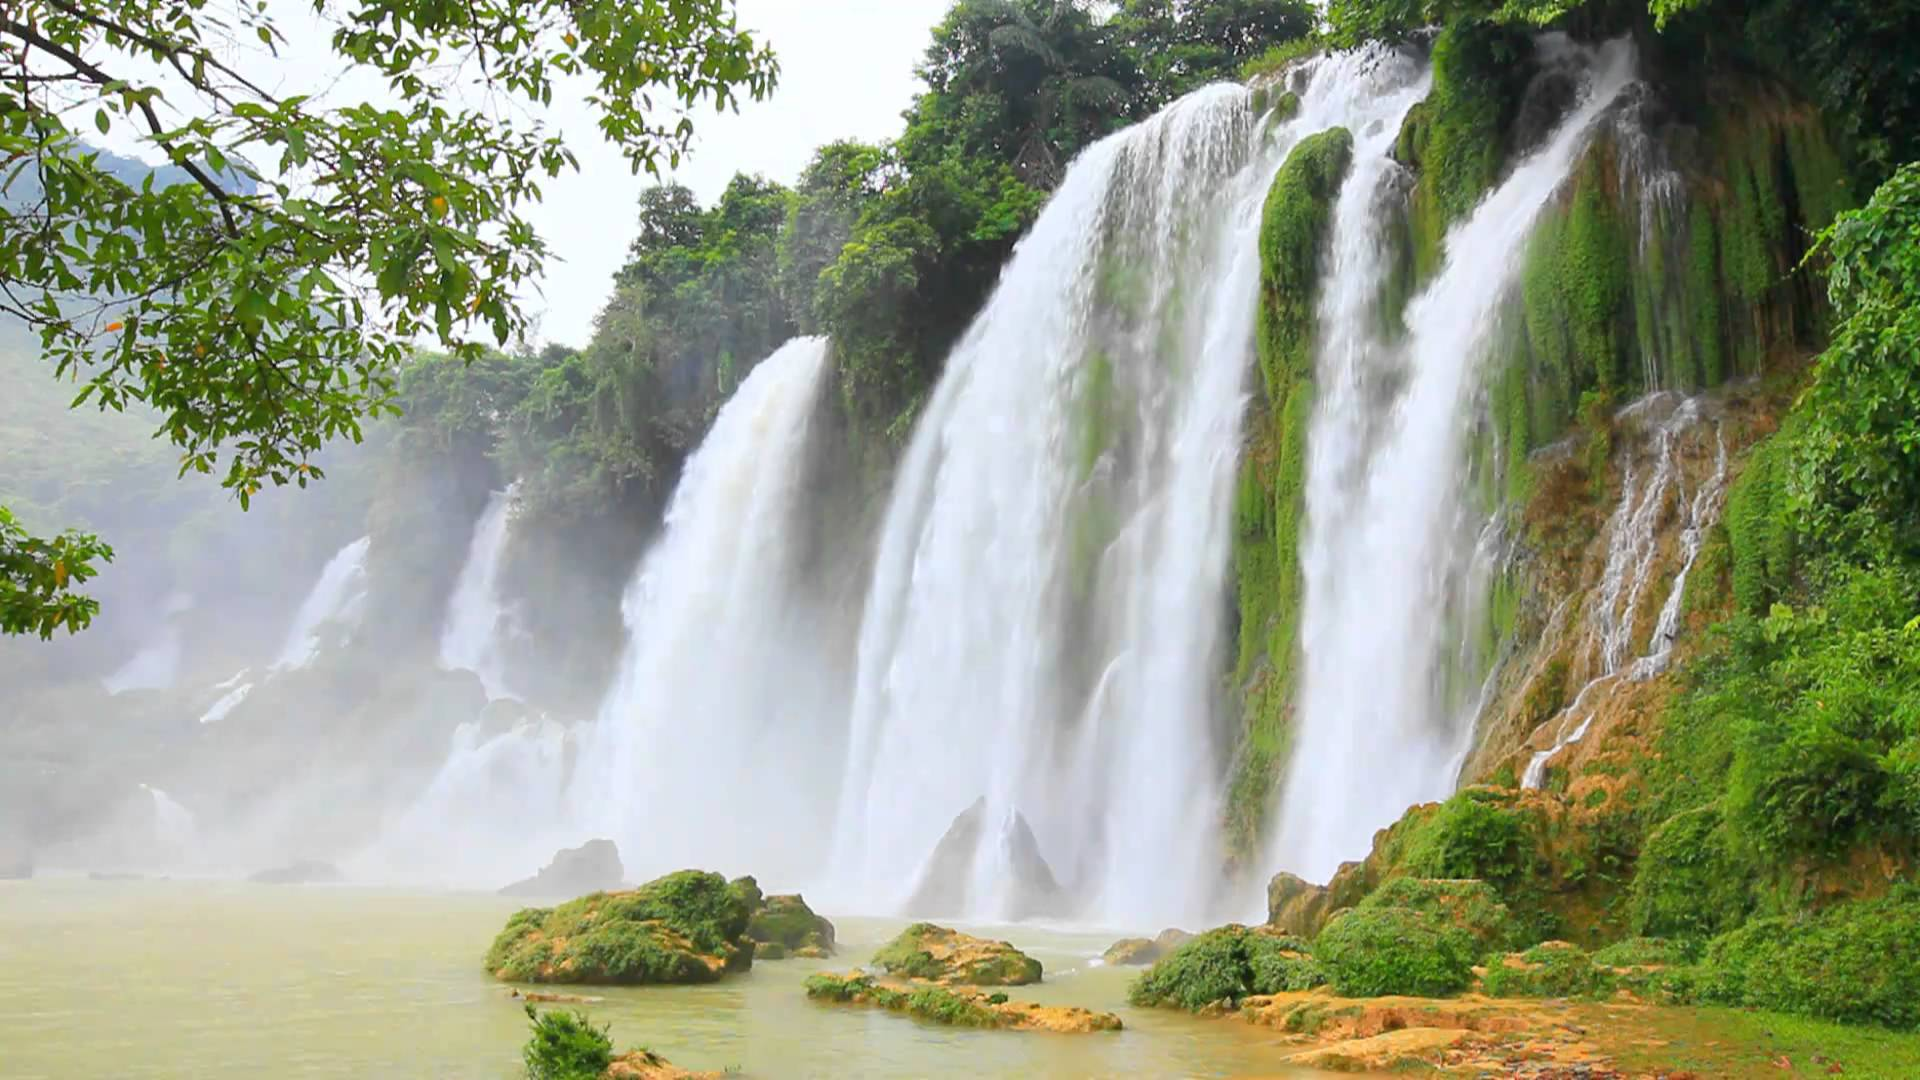 Download Moving Waterfall Wallpaper Gallery